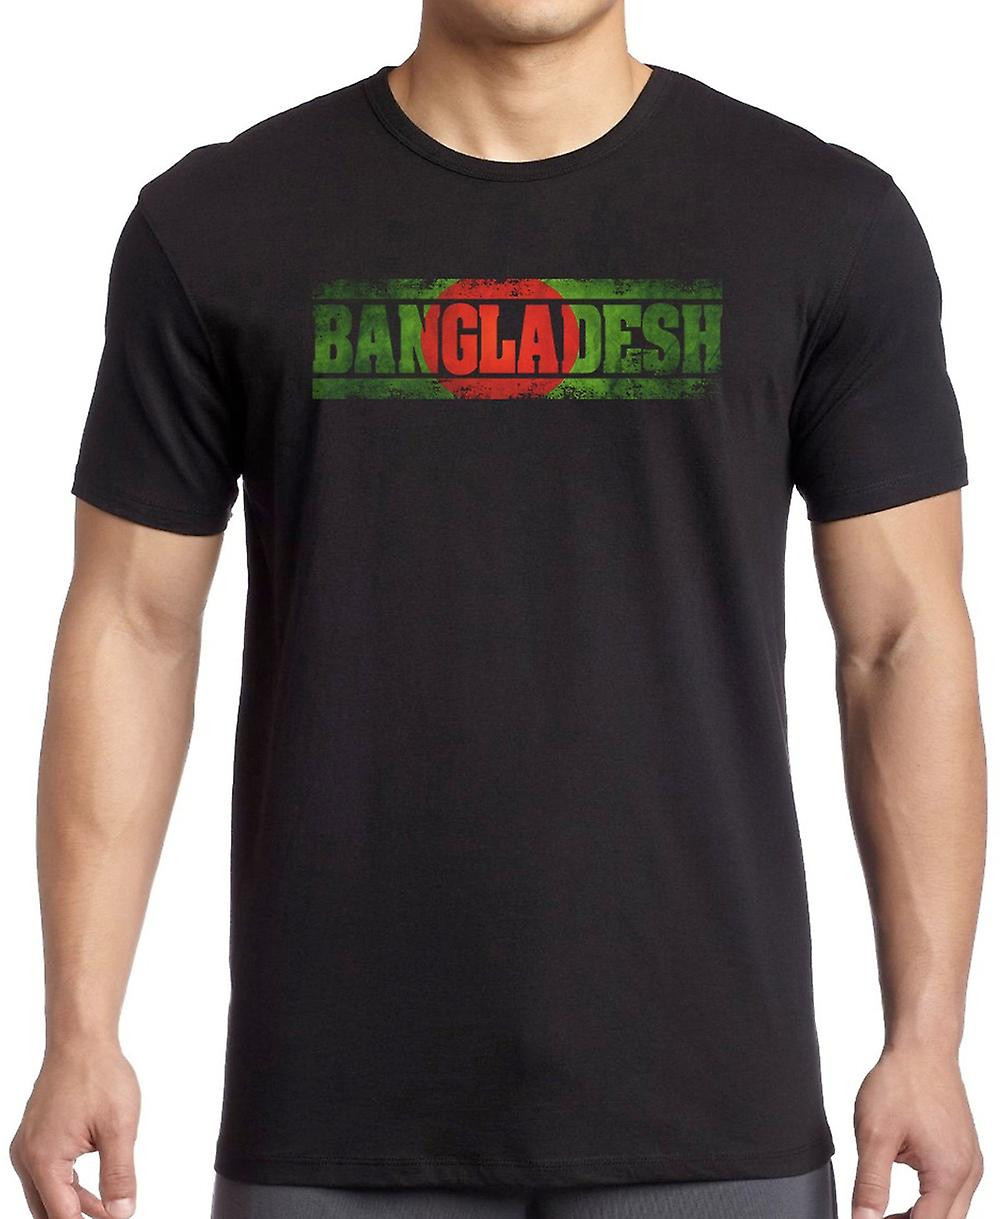 Bangladeshi Bangladesh Flag - Words T Shirt